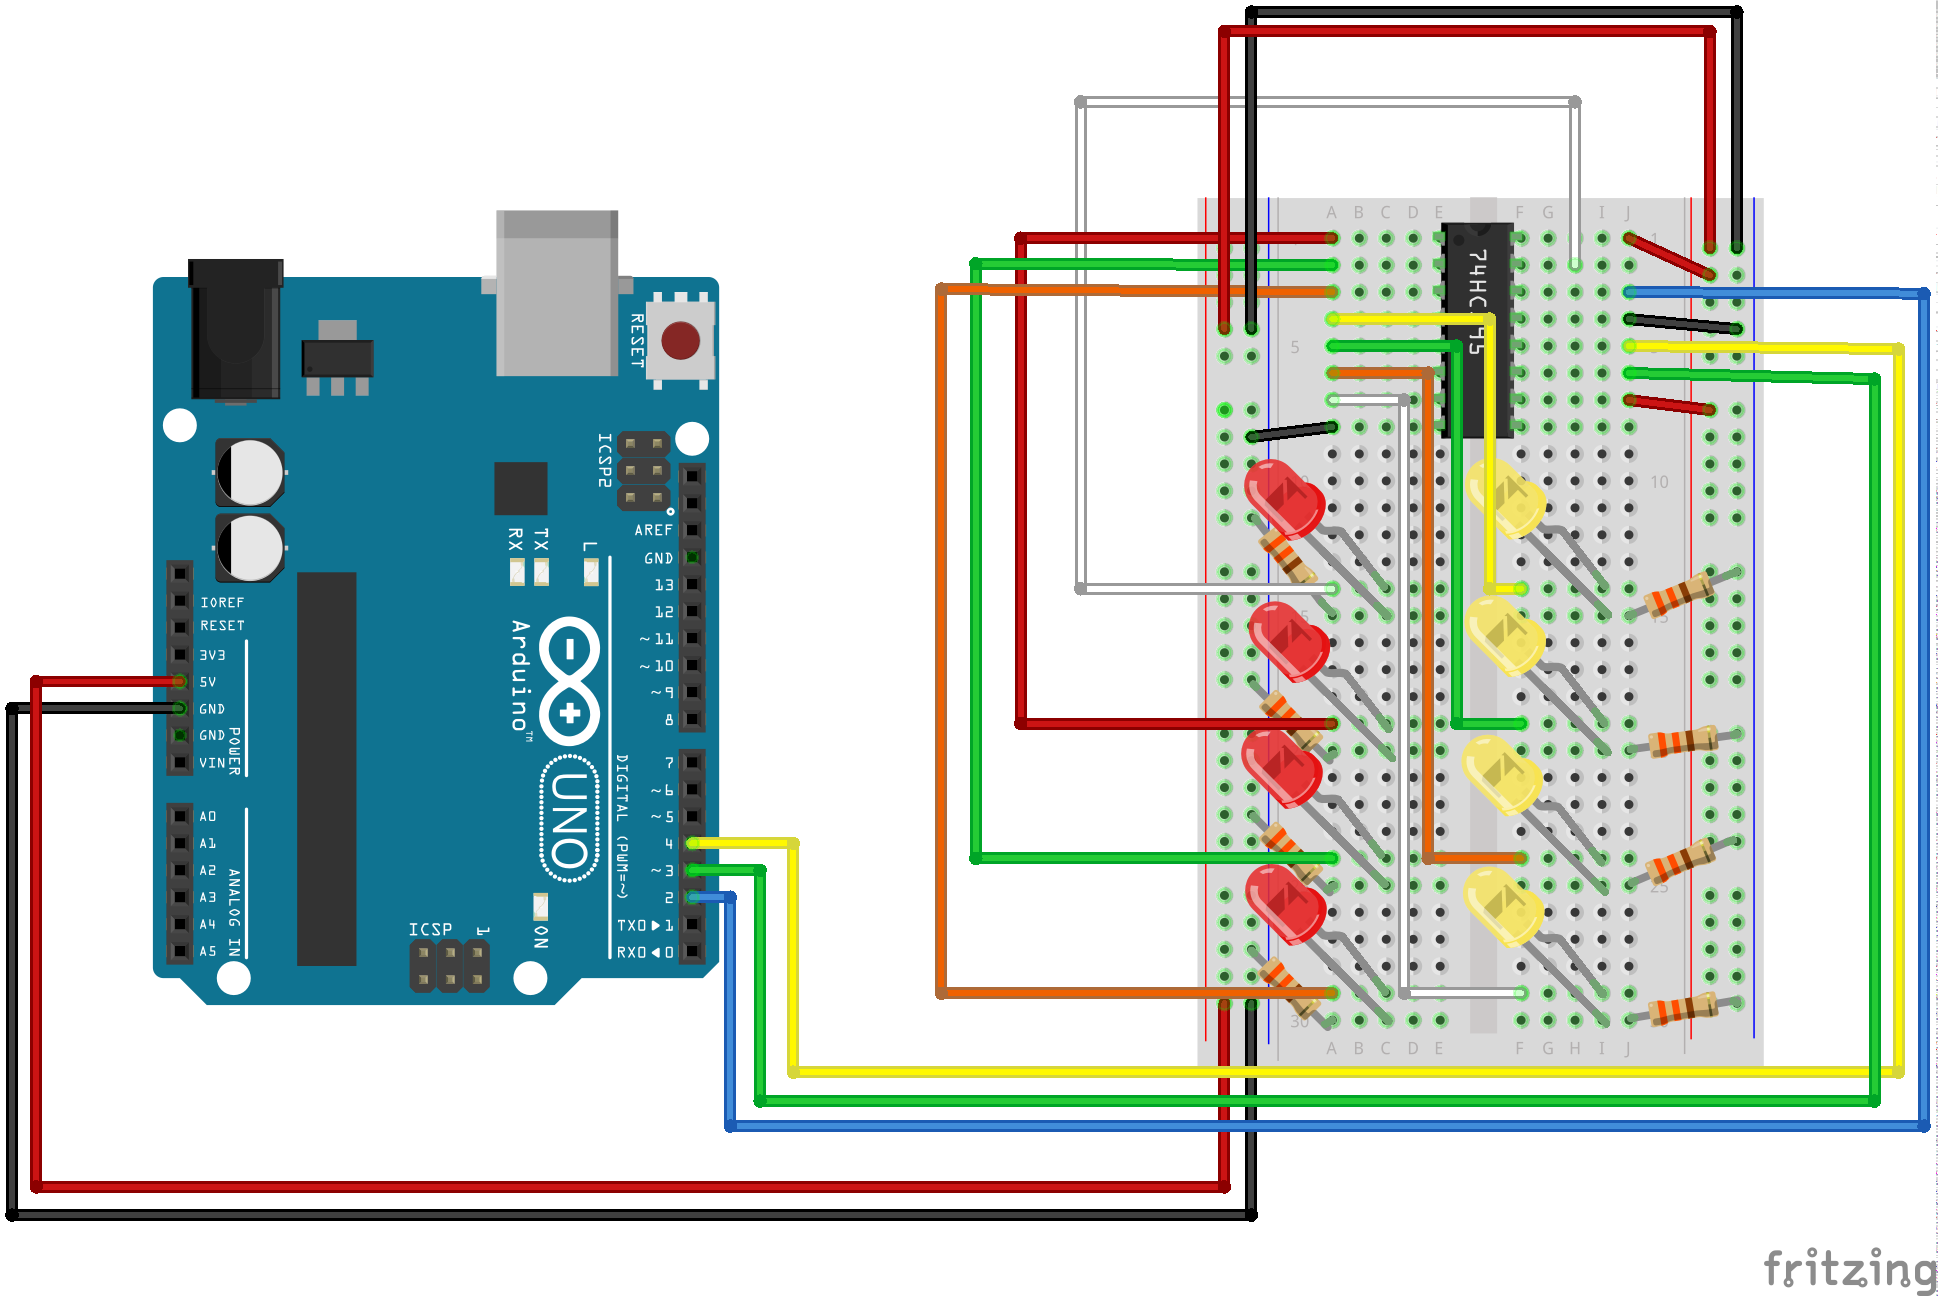 Sik Experiment Guide For Arduino - V3 2